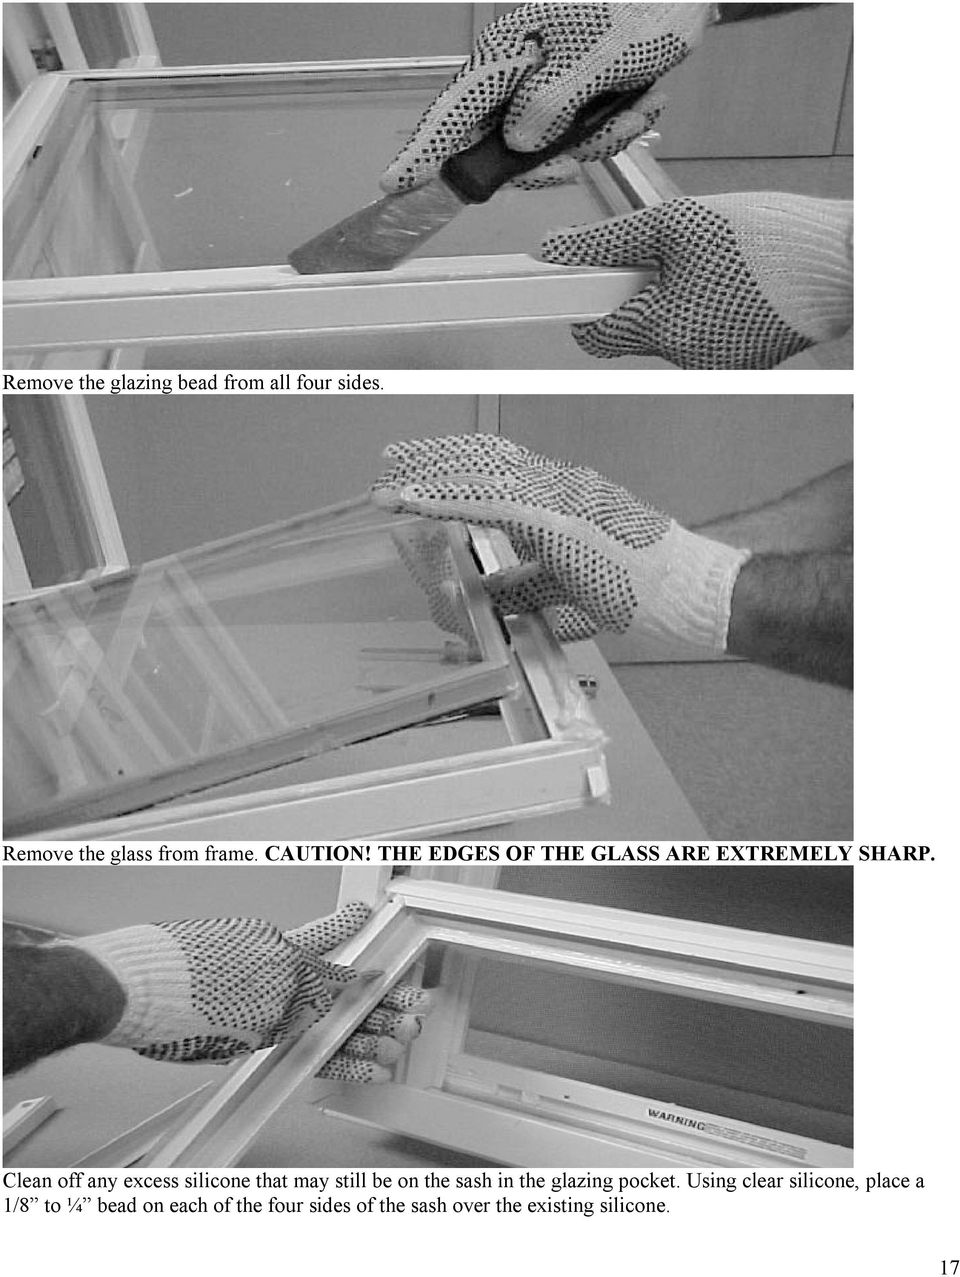 Clean off any excess silicone that may still be on the sash in the glazing